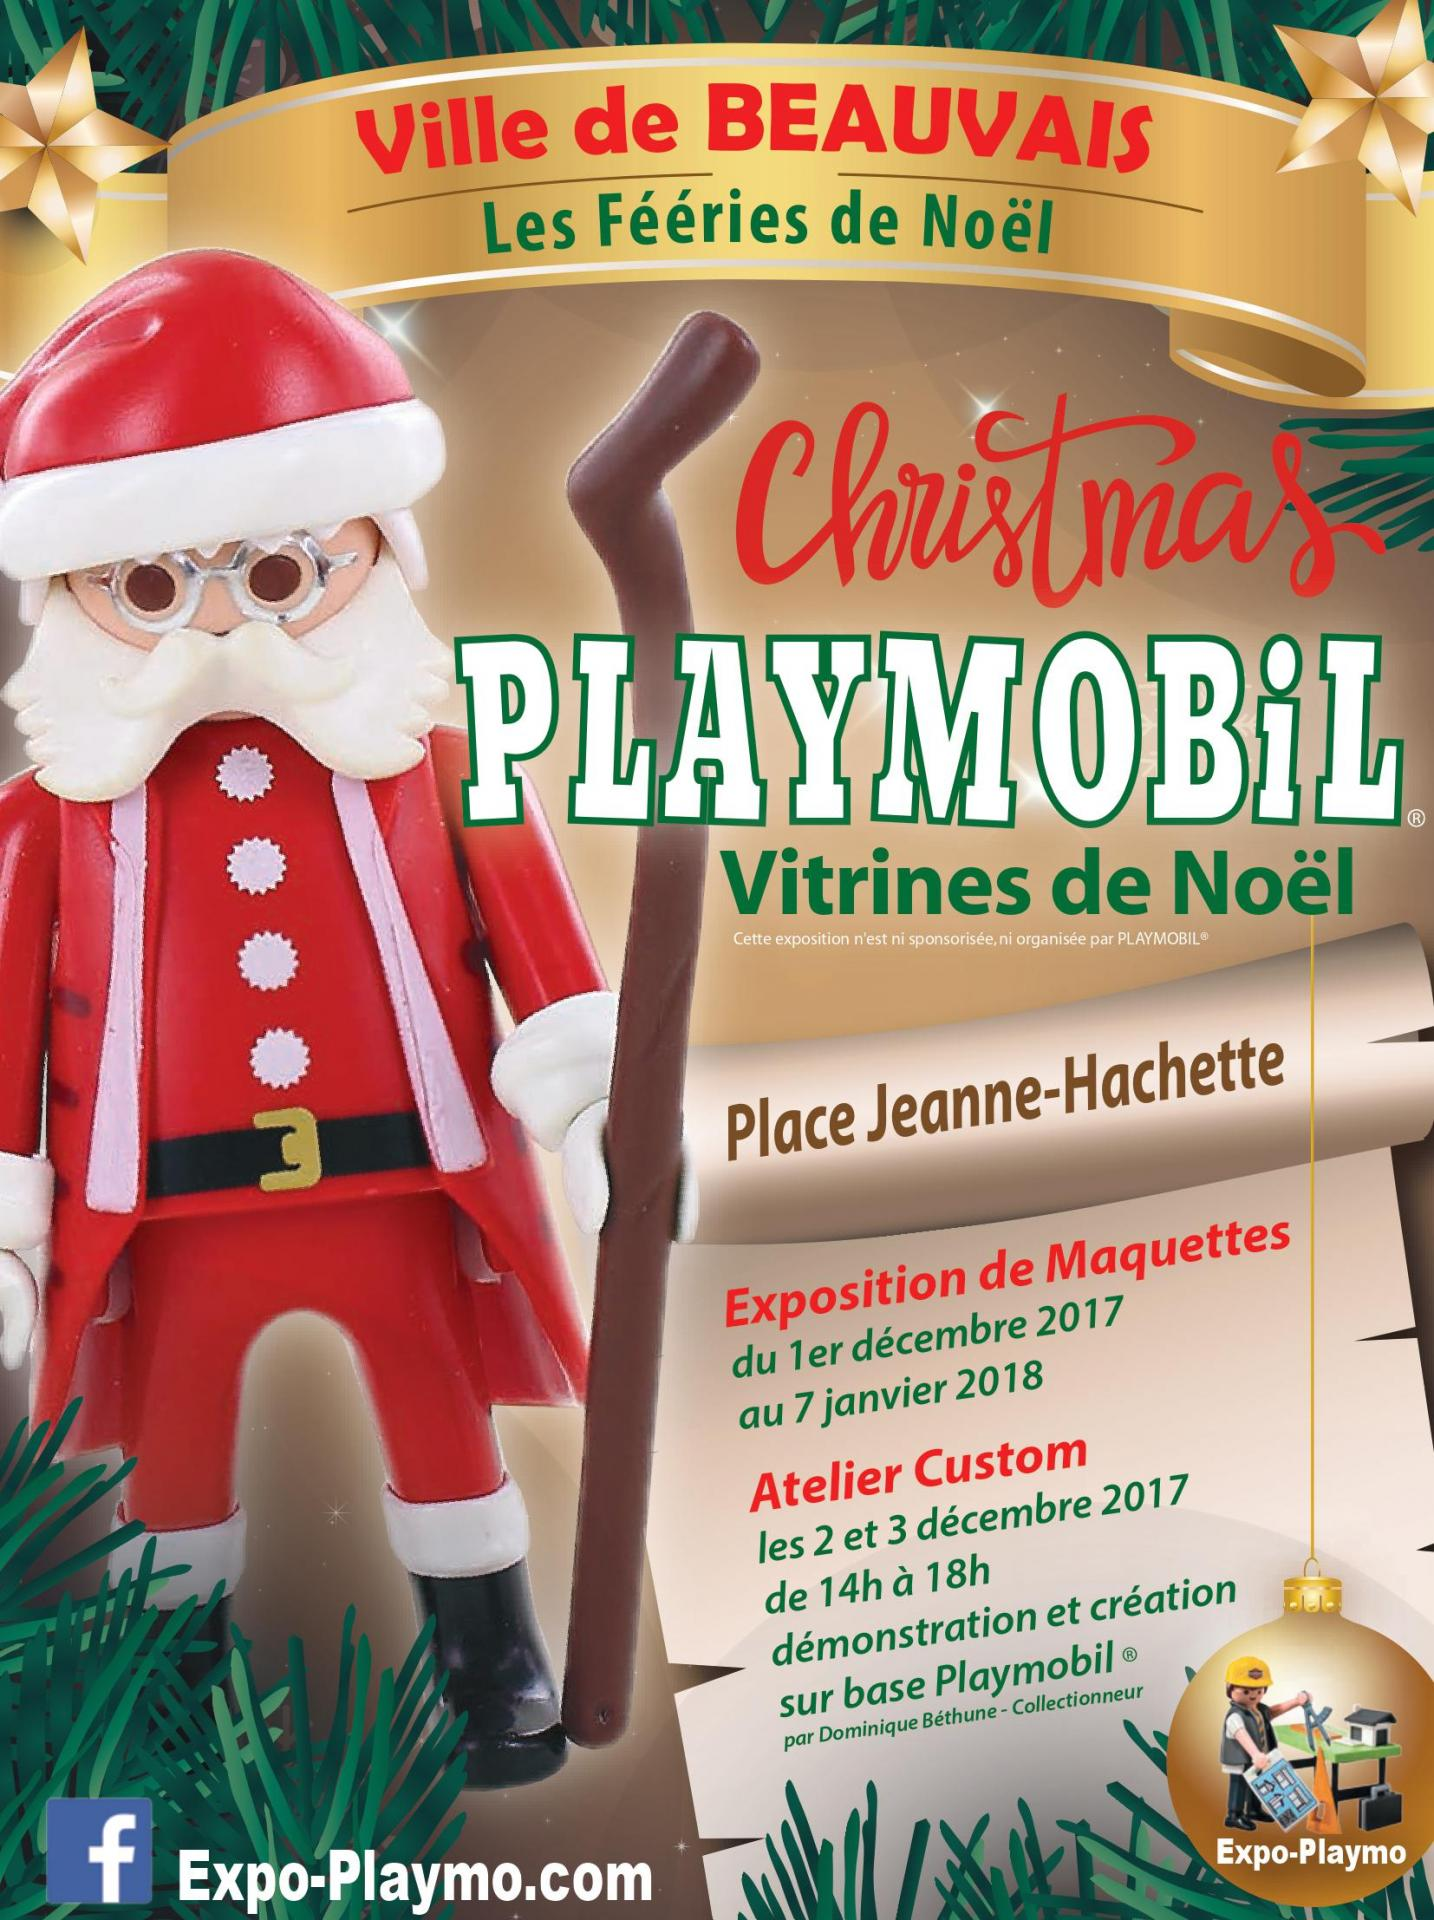 Exposition playmobil beauvais dominique bethune